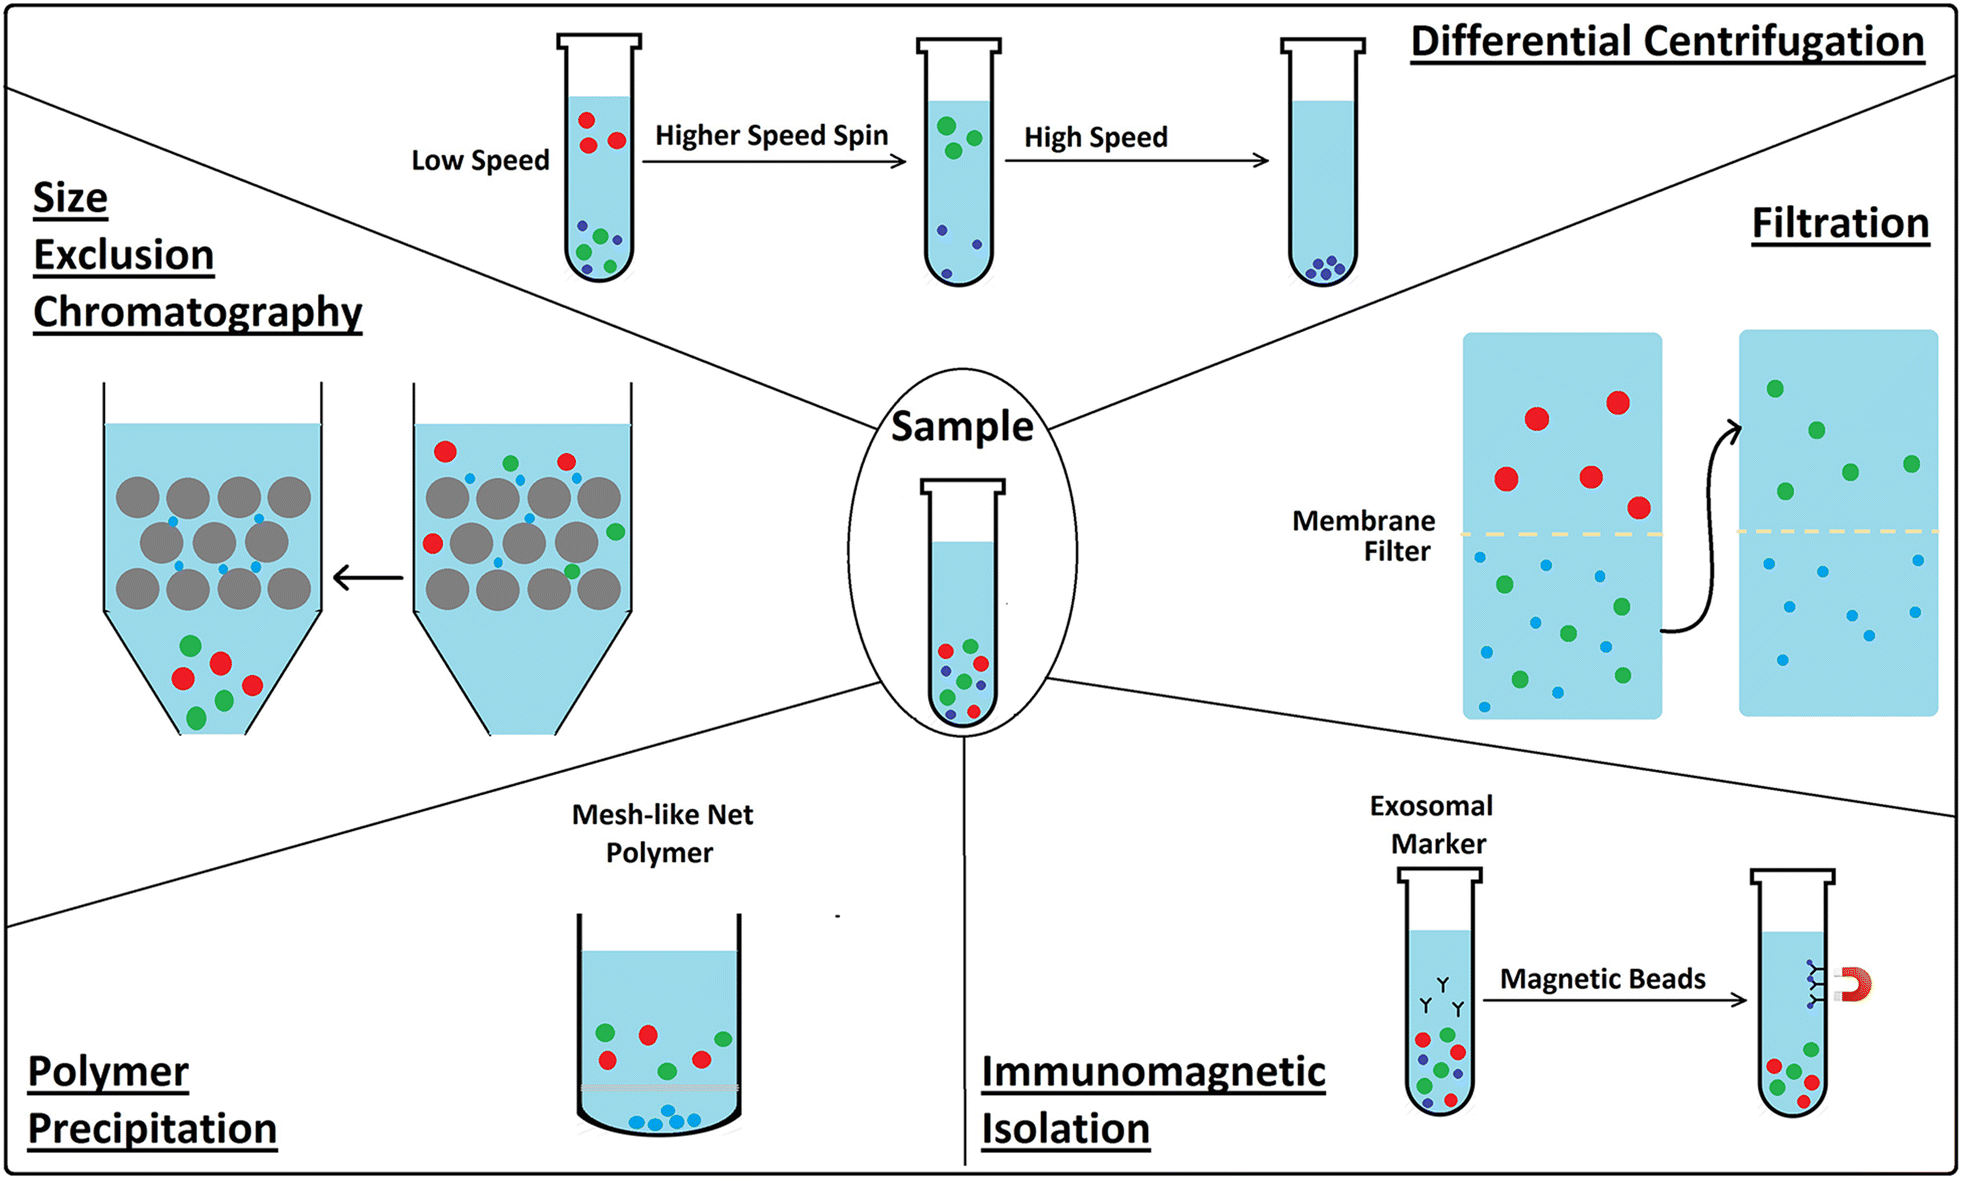 Recent Advancements In The Use Of Exosomes As Drug Delivery Systems 2009 Saab 9 3 Fuse Diagram Schematic Exosome Isolation